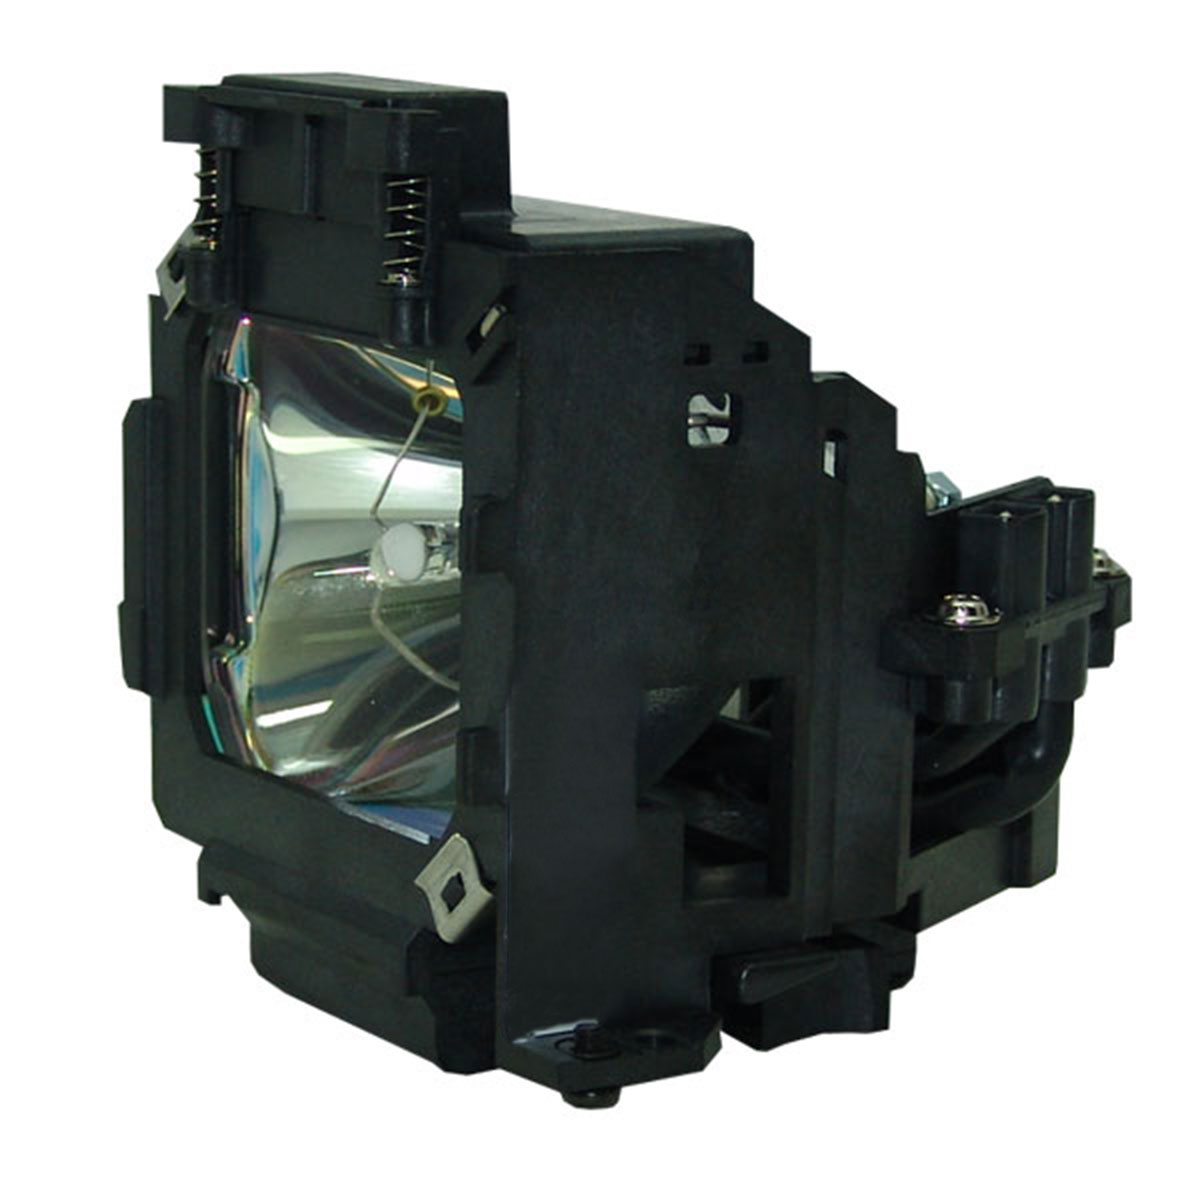 Original Philips Projector Lamp Replacement for Epson EMP-810UG (Bulb Only) - image 5 de 5